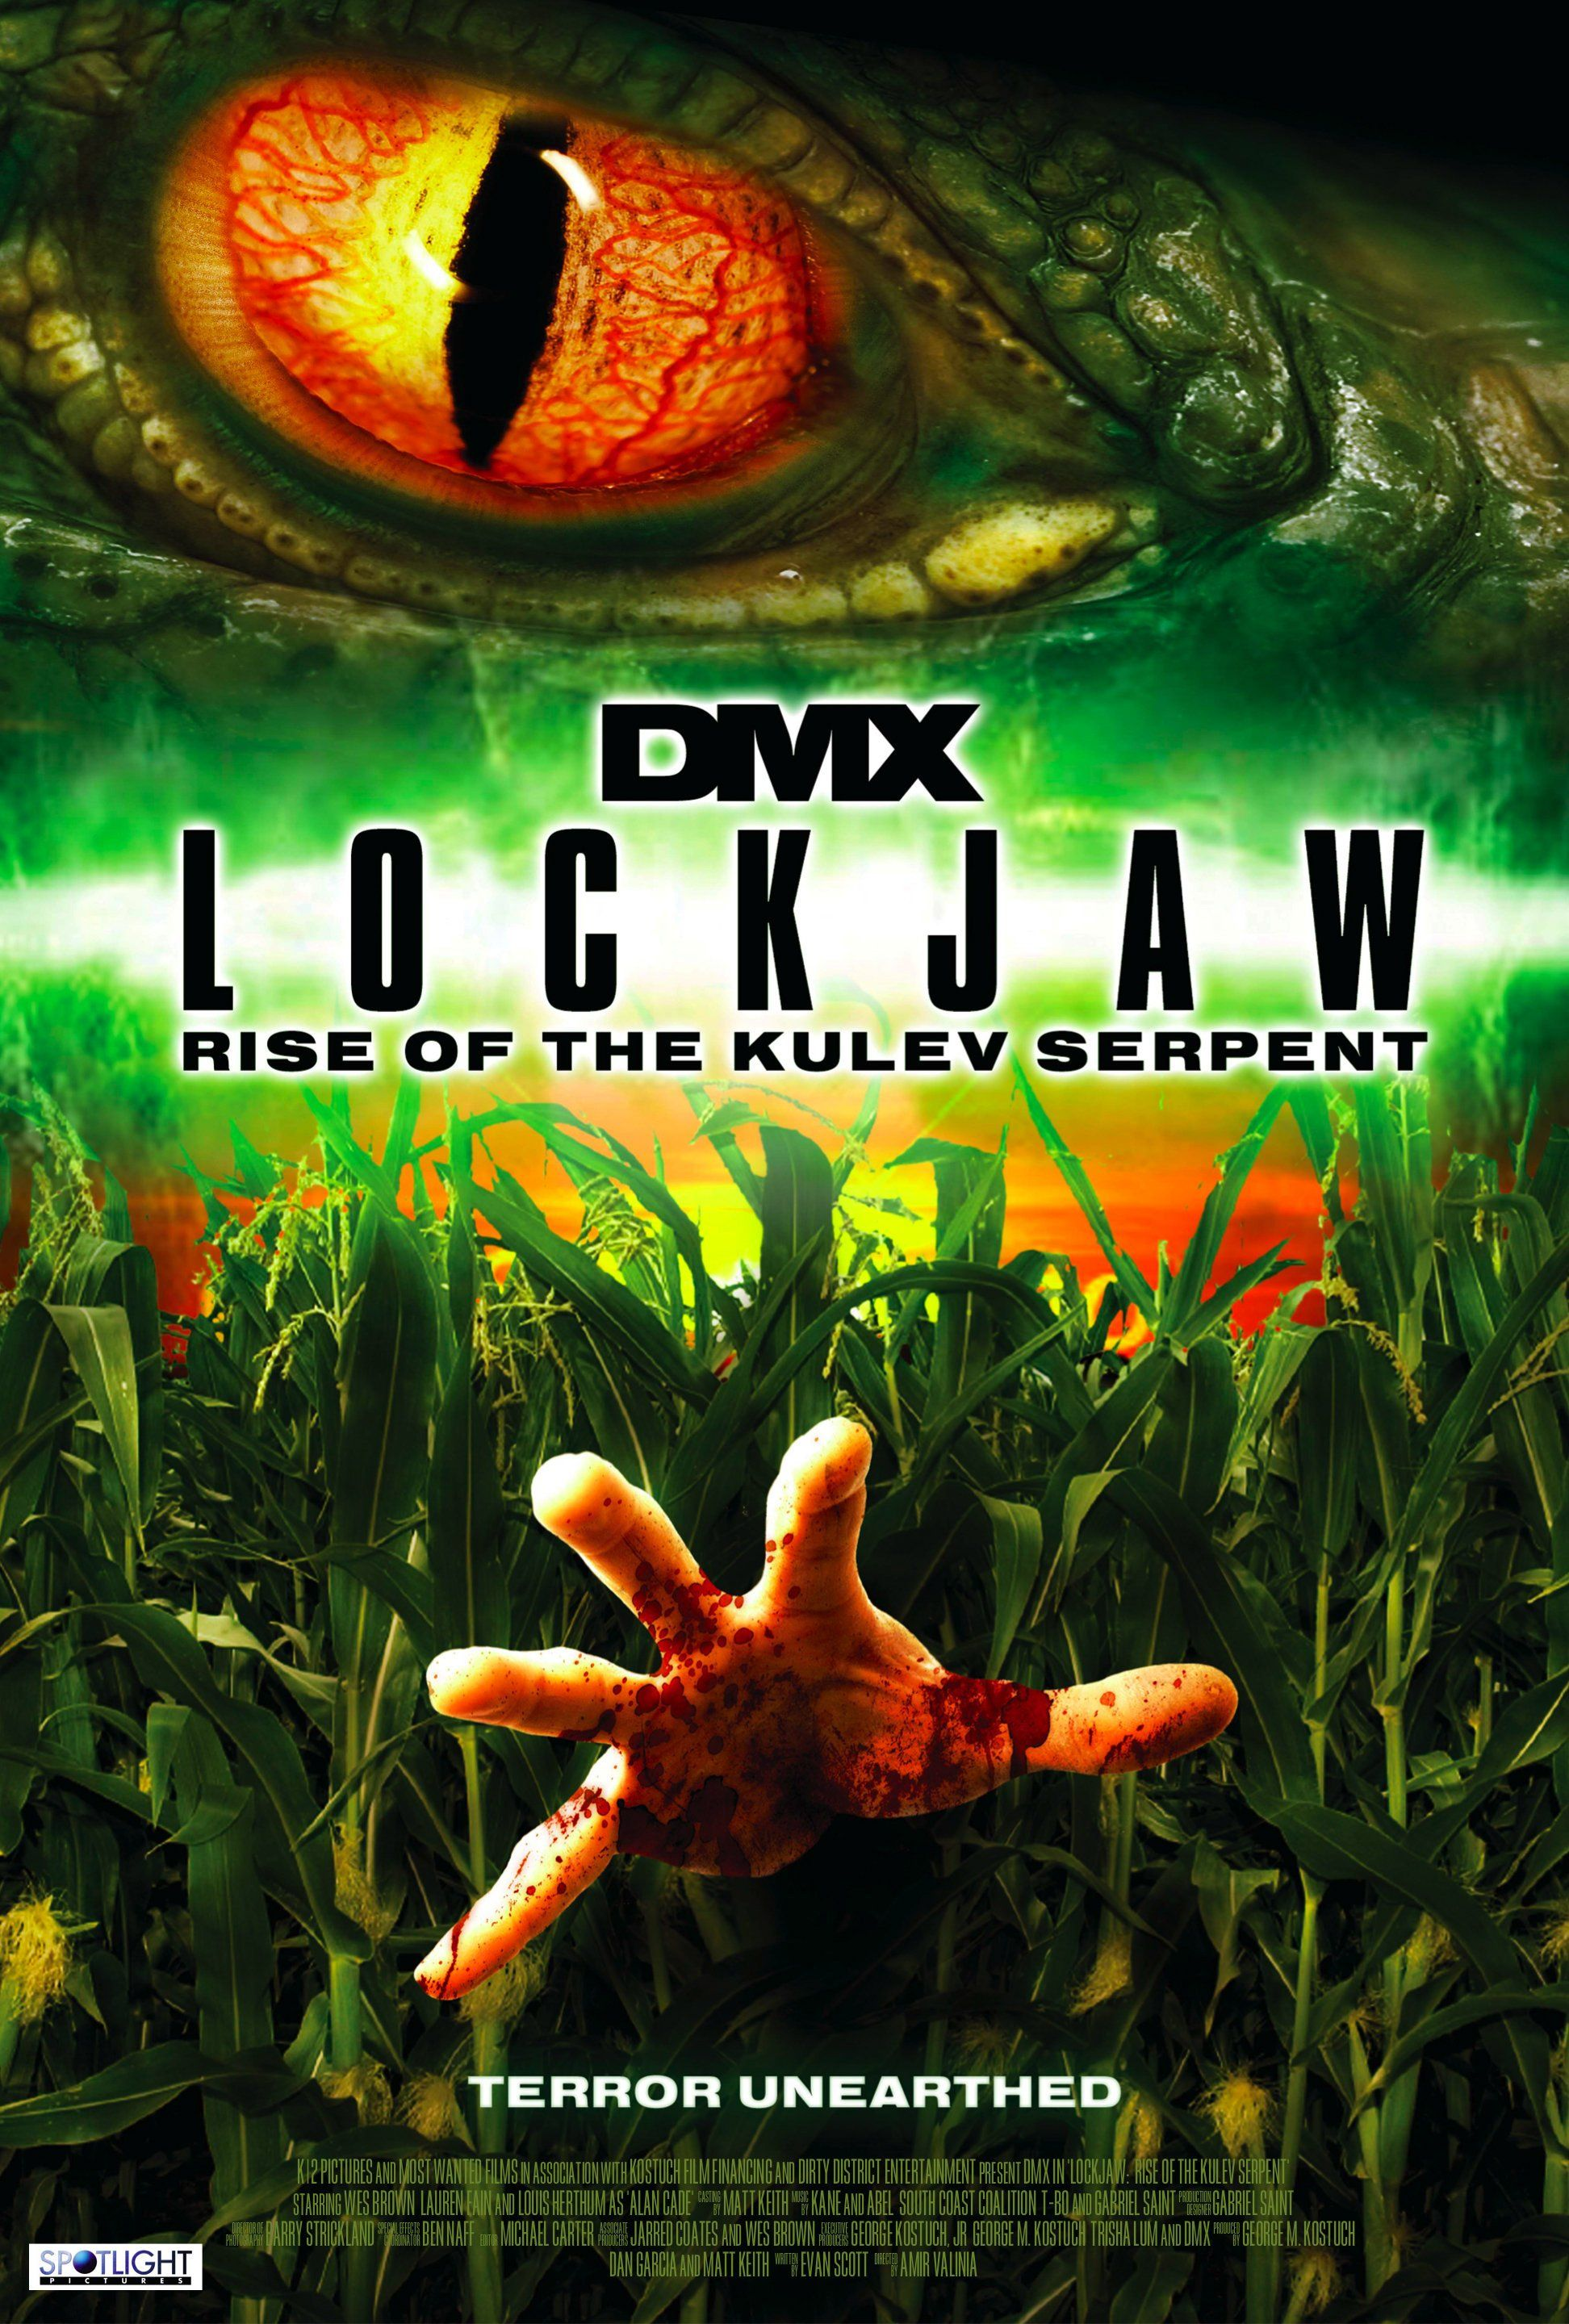 Lockjaw rise of the kulev serpent 2008 snakes movies